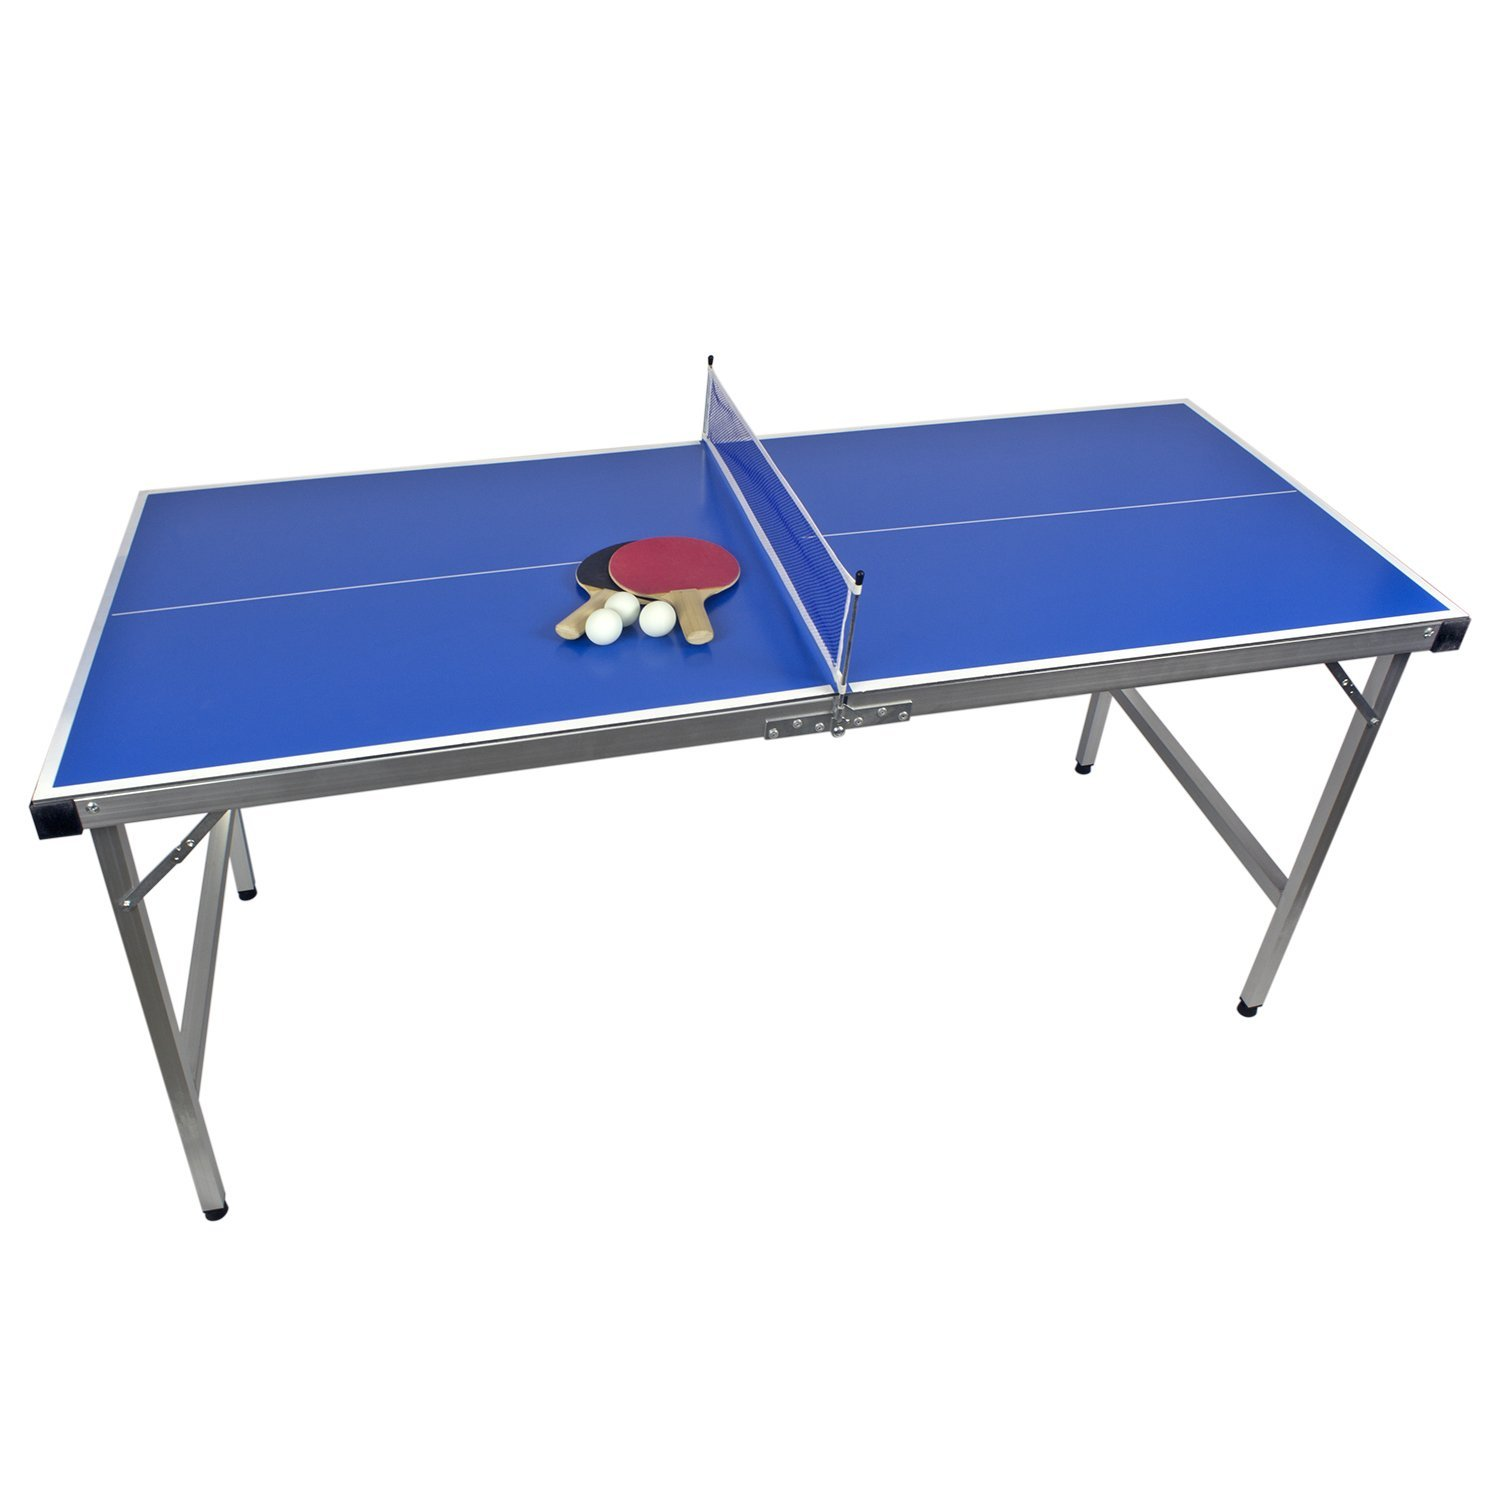 Poolmaster Outdoor Backyard Junior Table Tennis Ping Pong Paddles